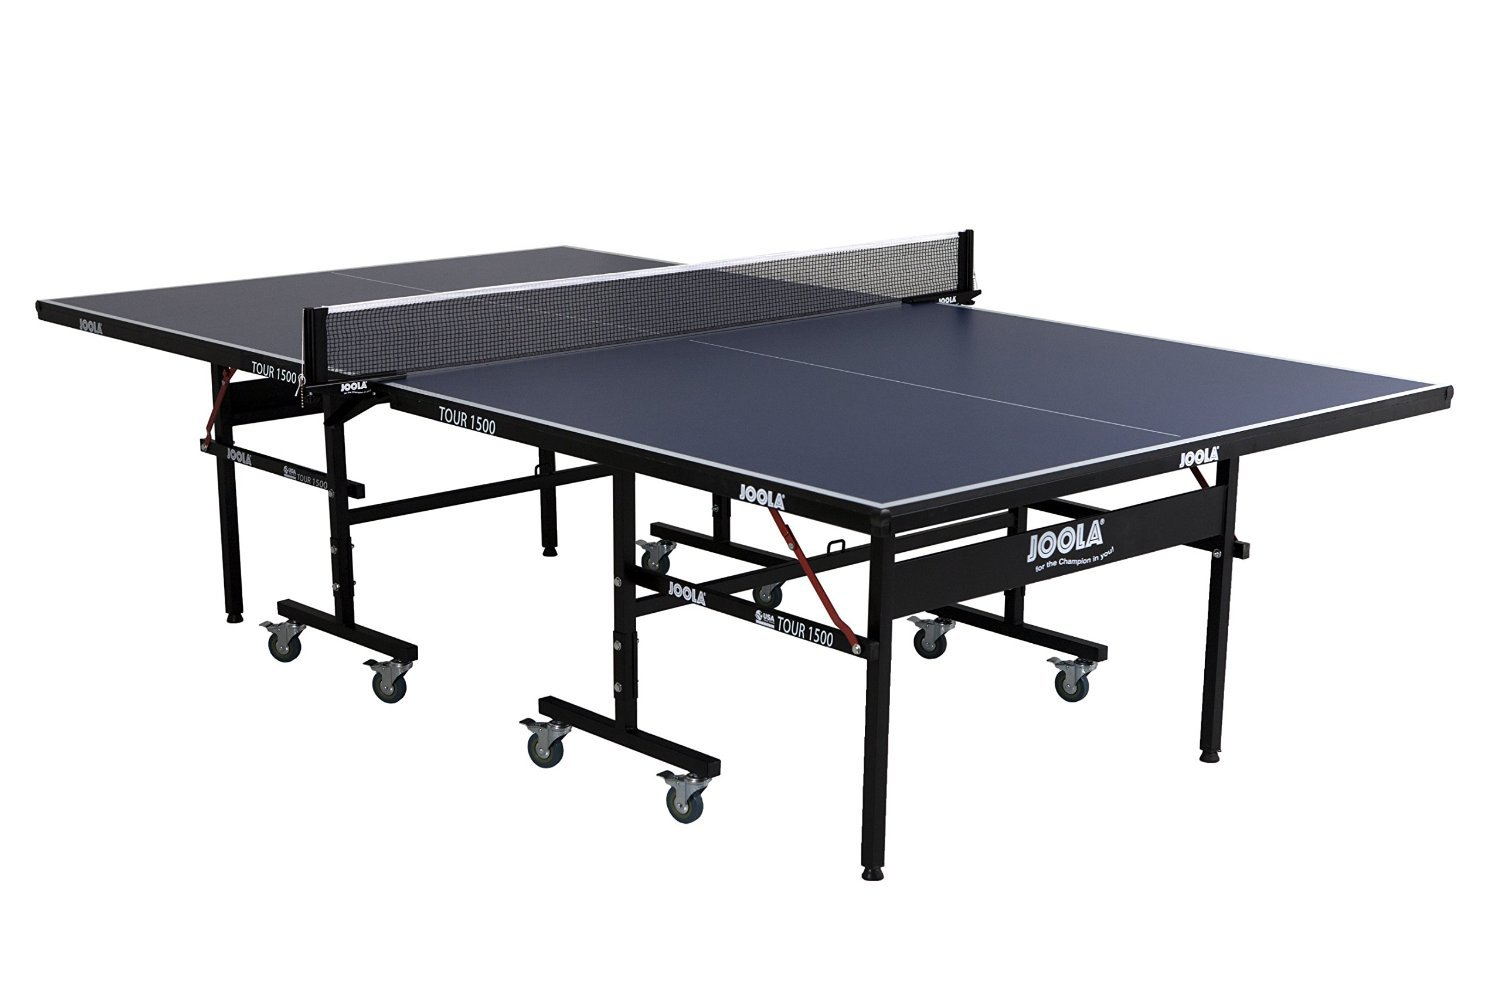 Joola tour 1500 reviews for Table tennis